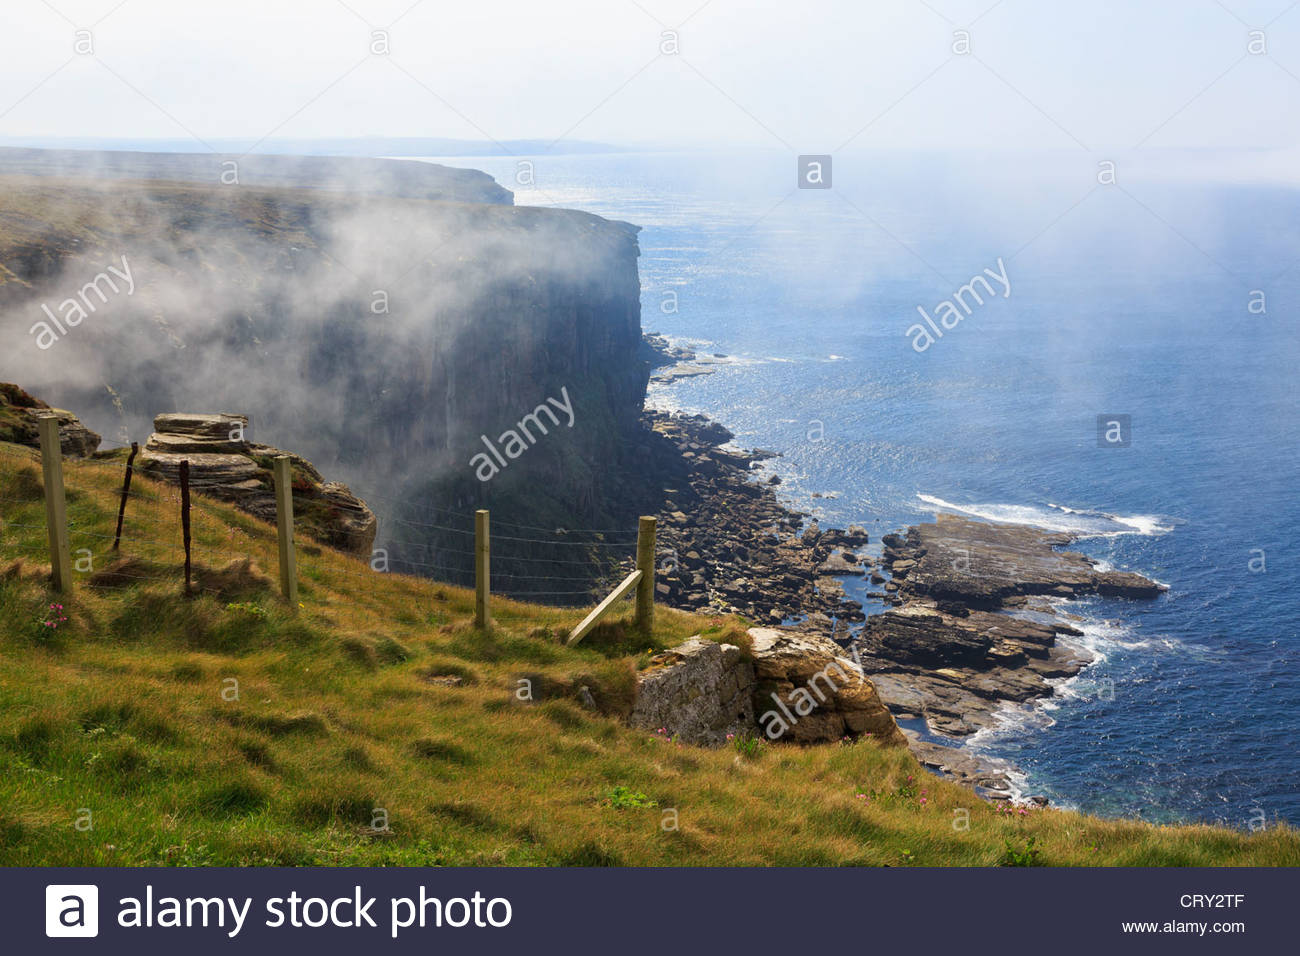 Dunnet Caithness Scotland UK. Dunnet Head seacliffs in sea mist at most northerly point on mainland Britain is an - Stock Image